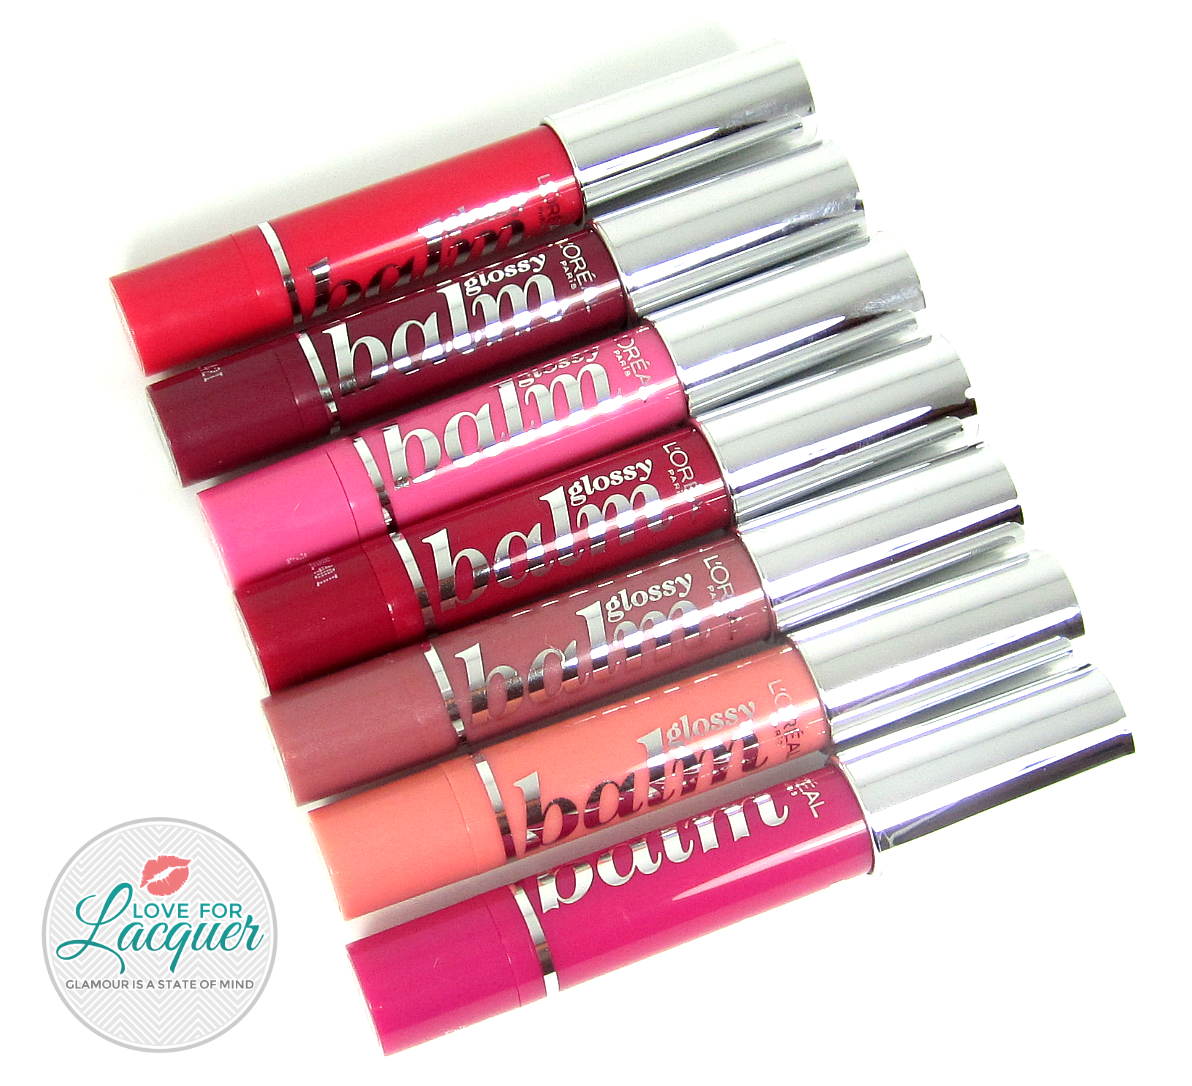 L Oreal Glossy Balm Collection Swatches Review Love For